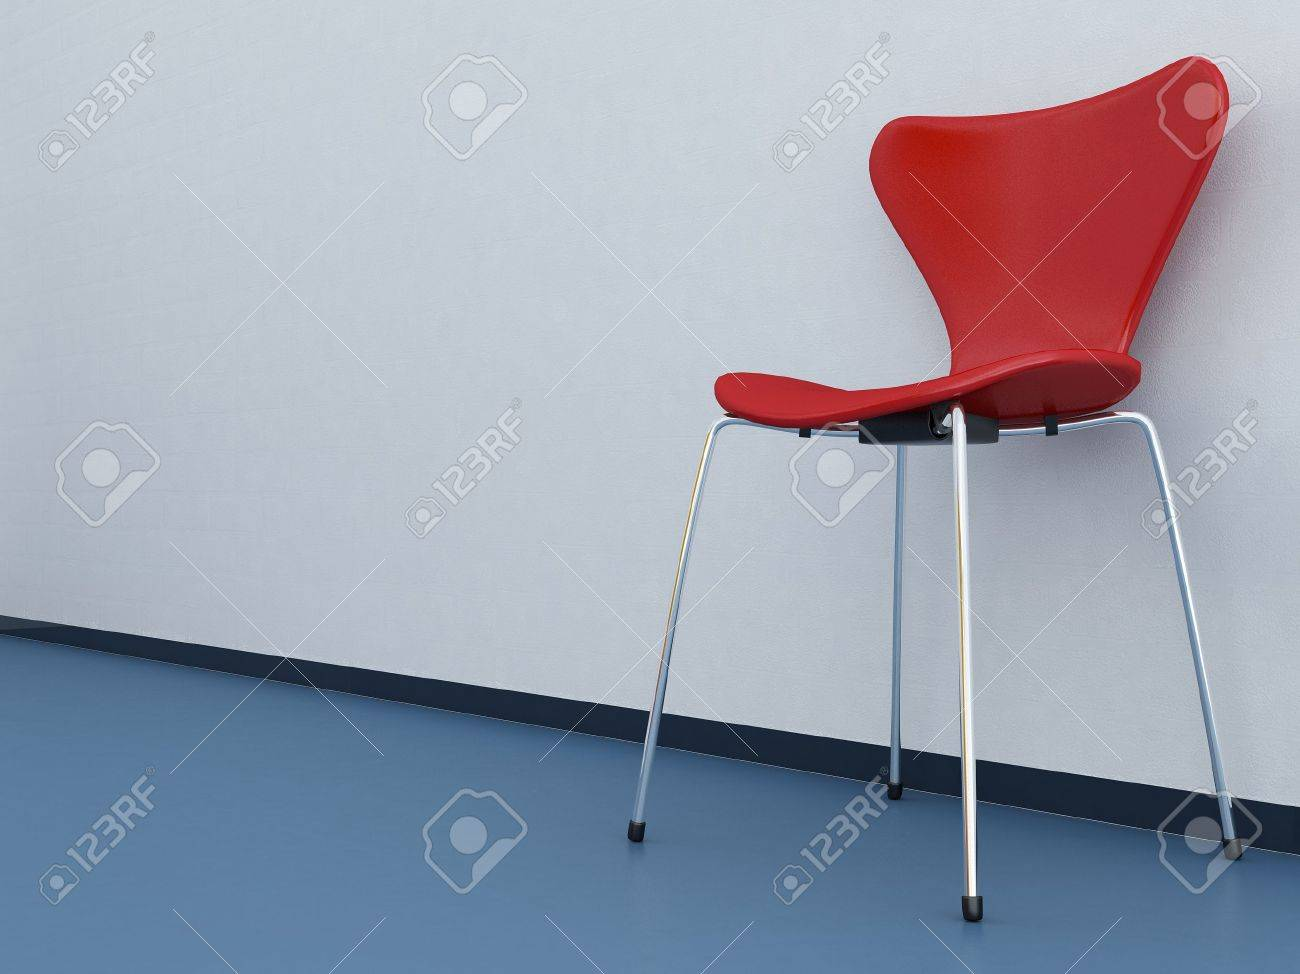 Wondrous Modern Red Chair To Face A Blank White Wall Blue Floor Pabps2019 Chair Design Images Pabps2019Com